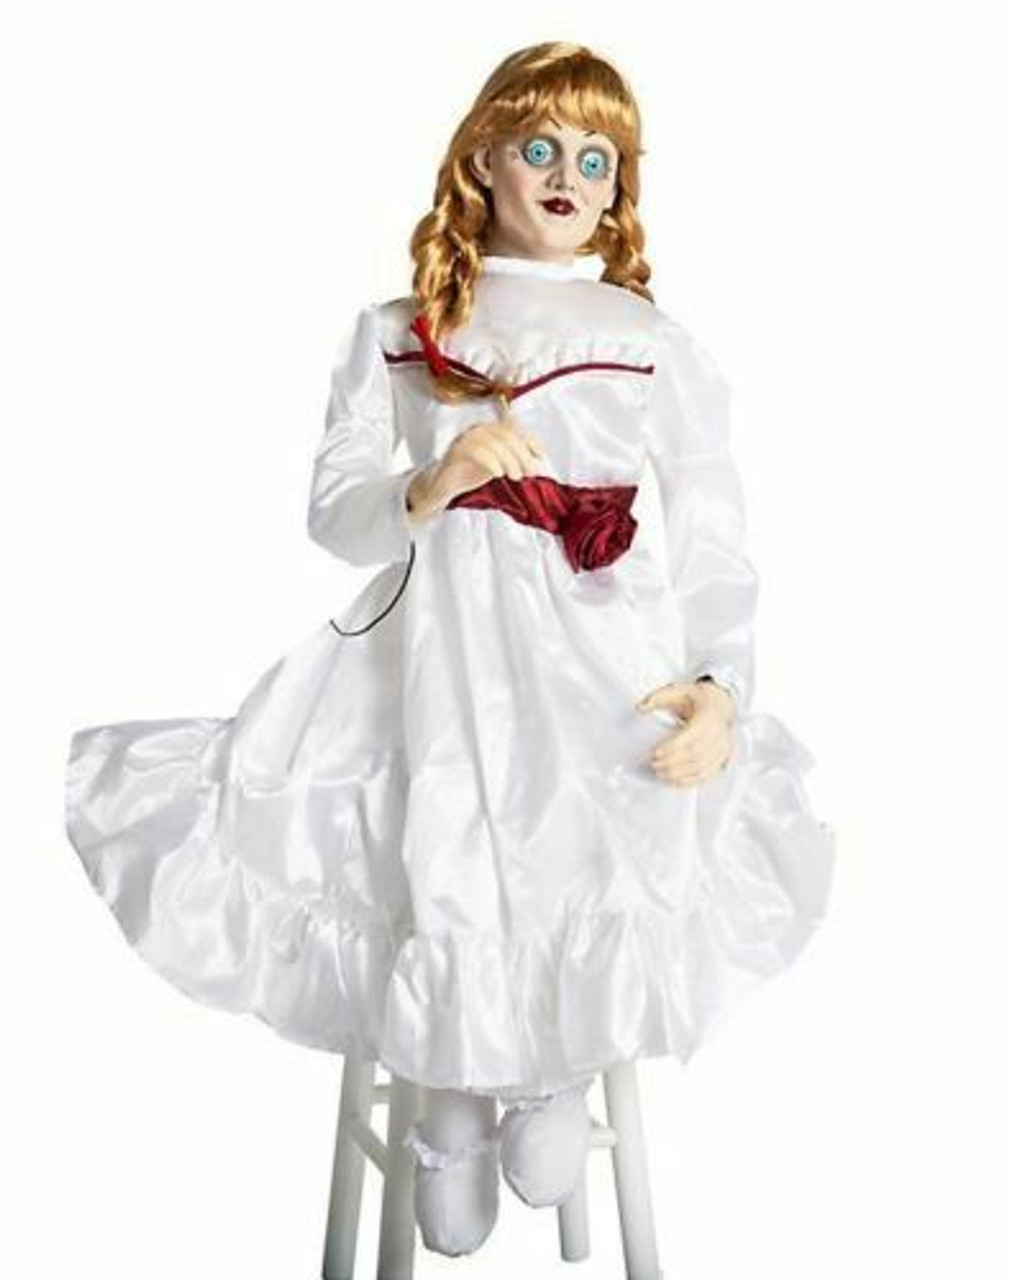 Morbid Enterprises Animated Annabelle Creation Doll 3FT Halloween Prop  M38231